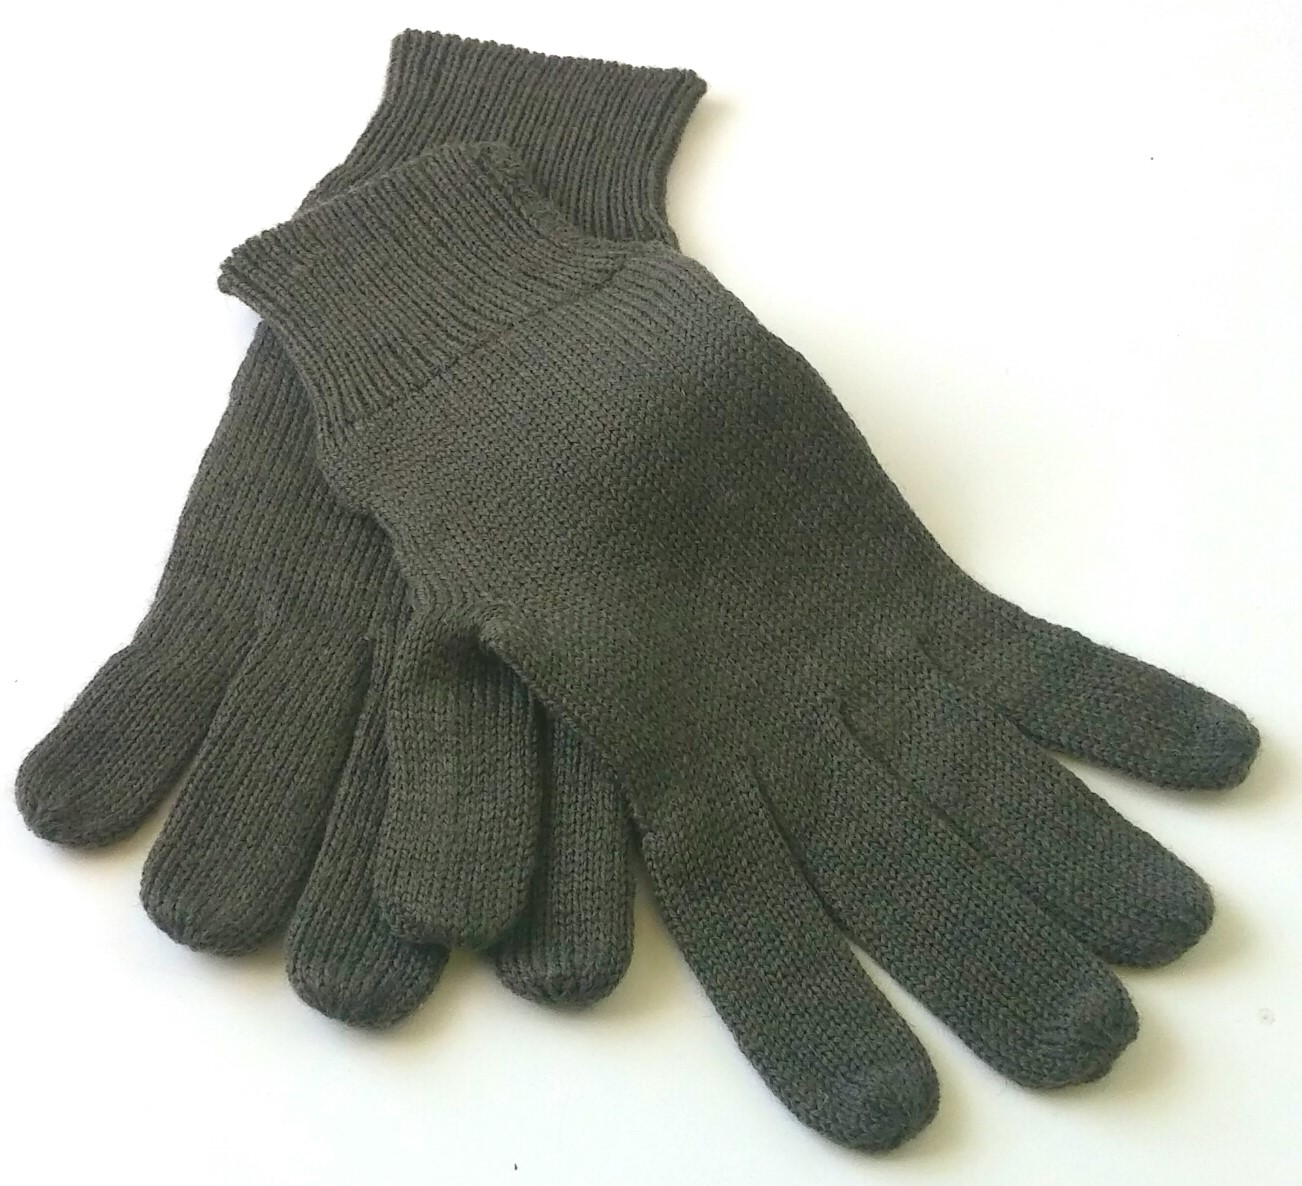 German wool gloves